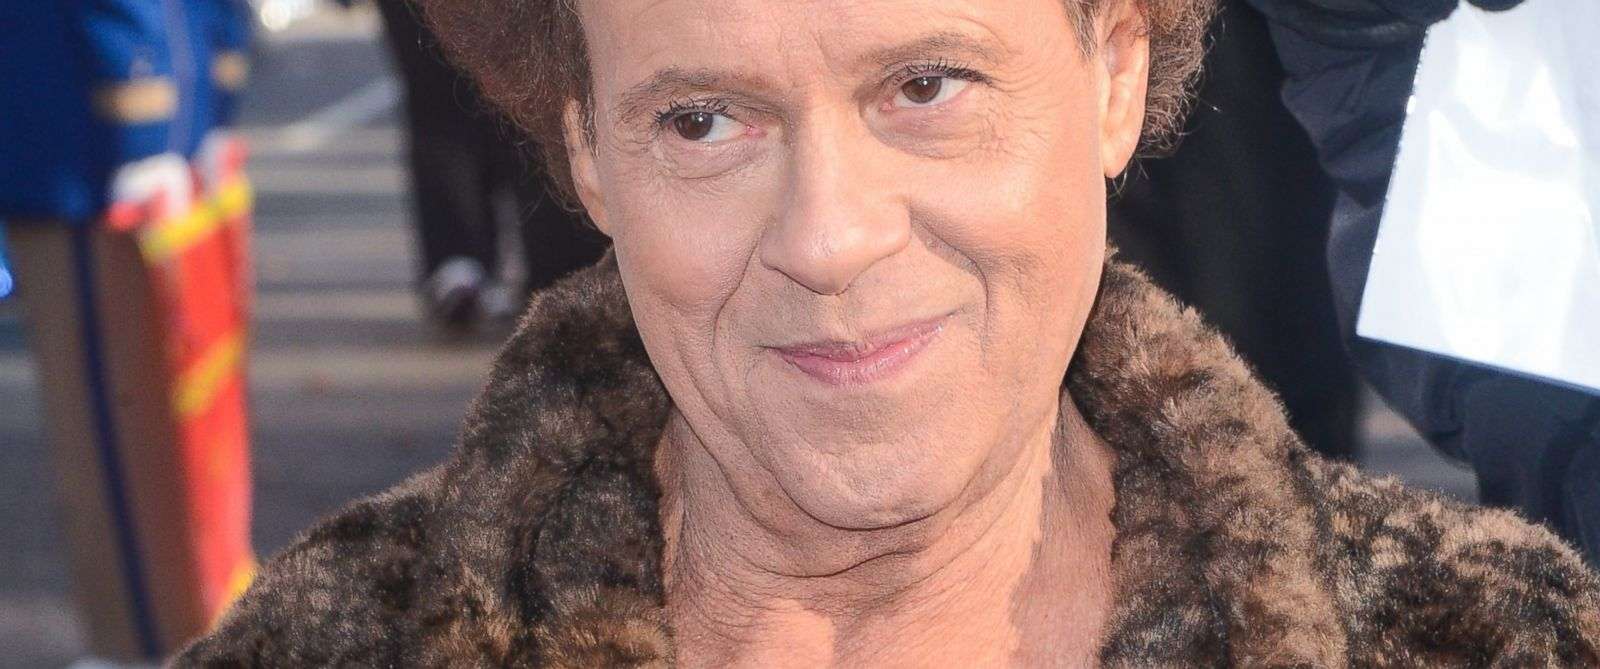 PHOTO: Richard Simmons attends the Macys Thanksgiving Day Parade in New York City on Nov. 28, 2013.